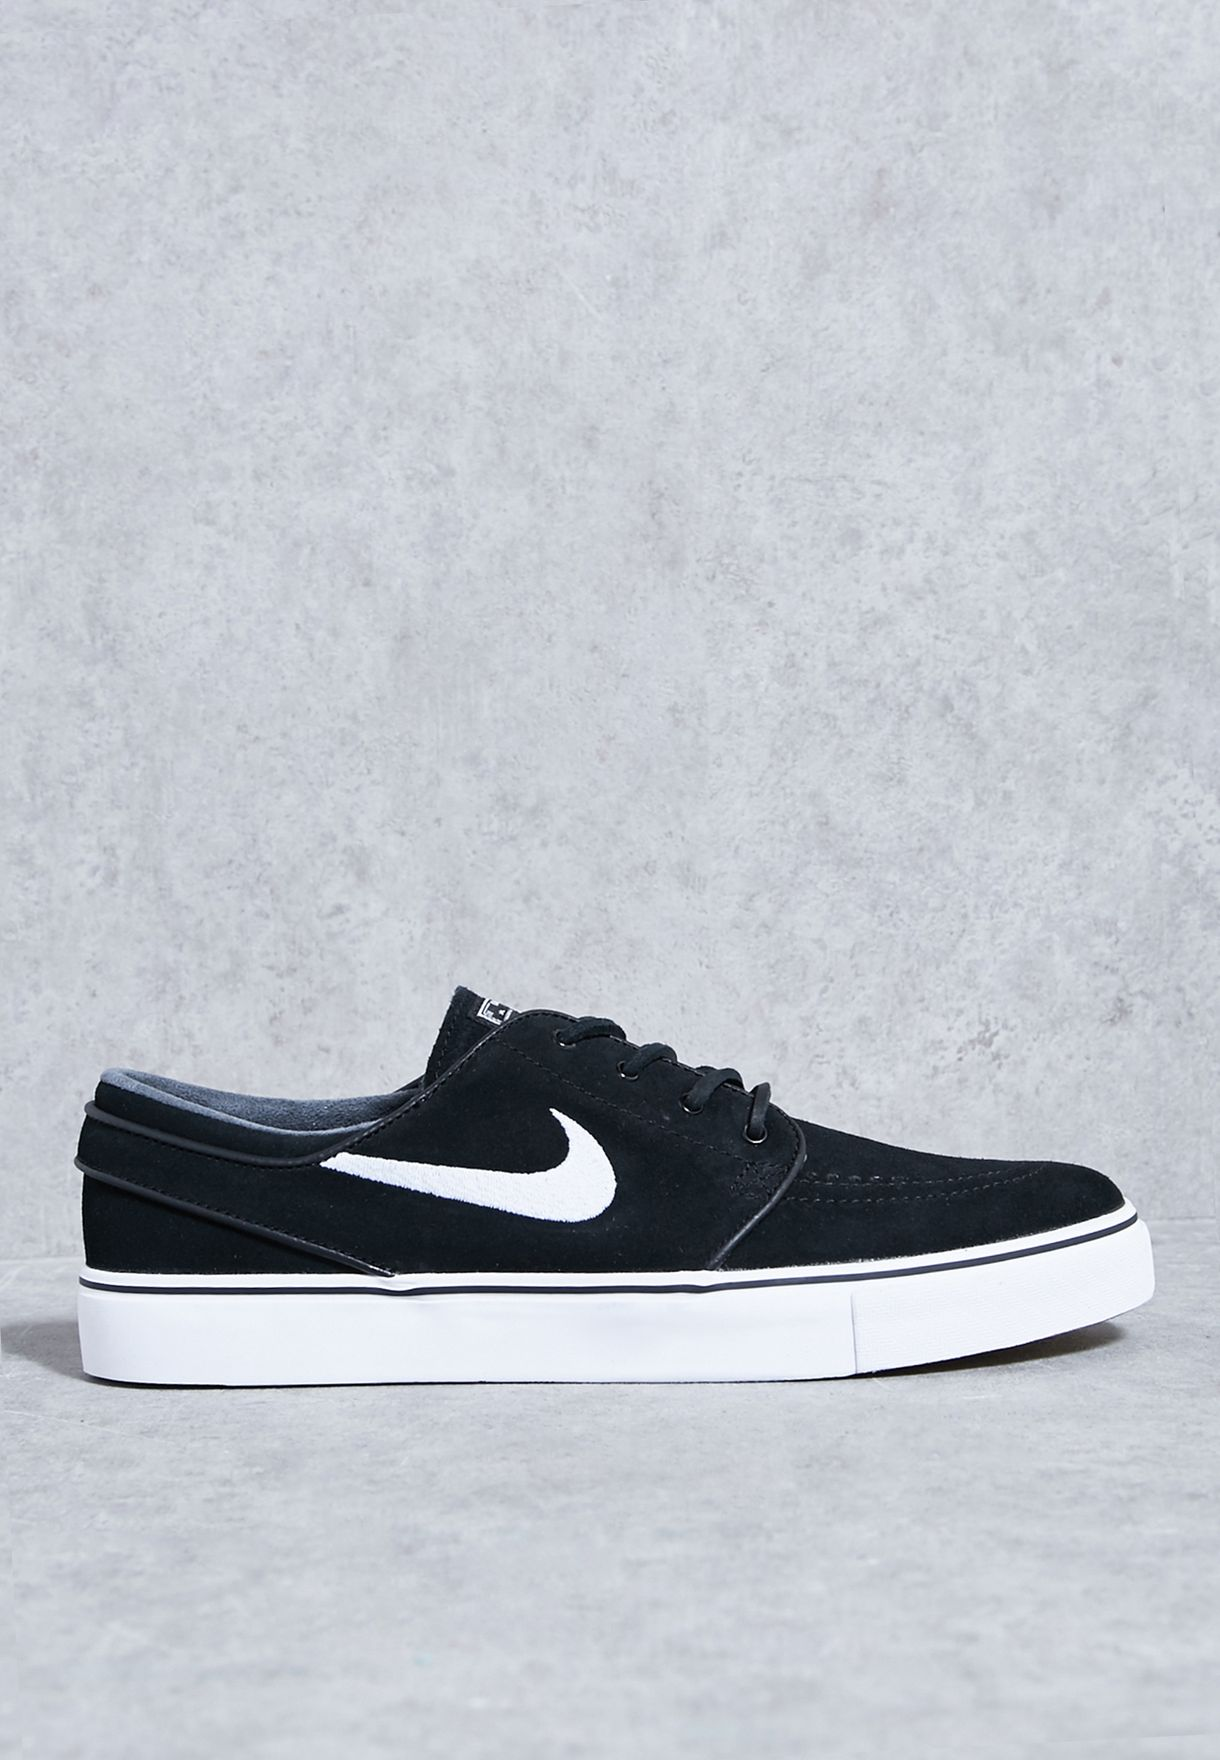 d1439fe8499a Shop Nike black Zoom Stefan Janoski OG 833603-012 for Men in UAE ...